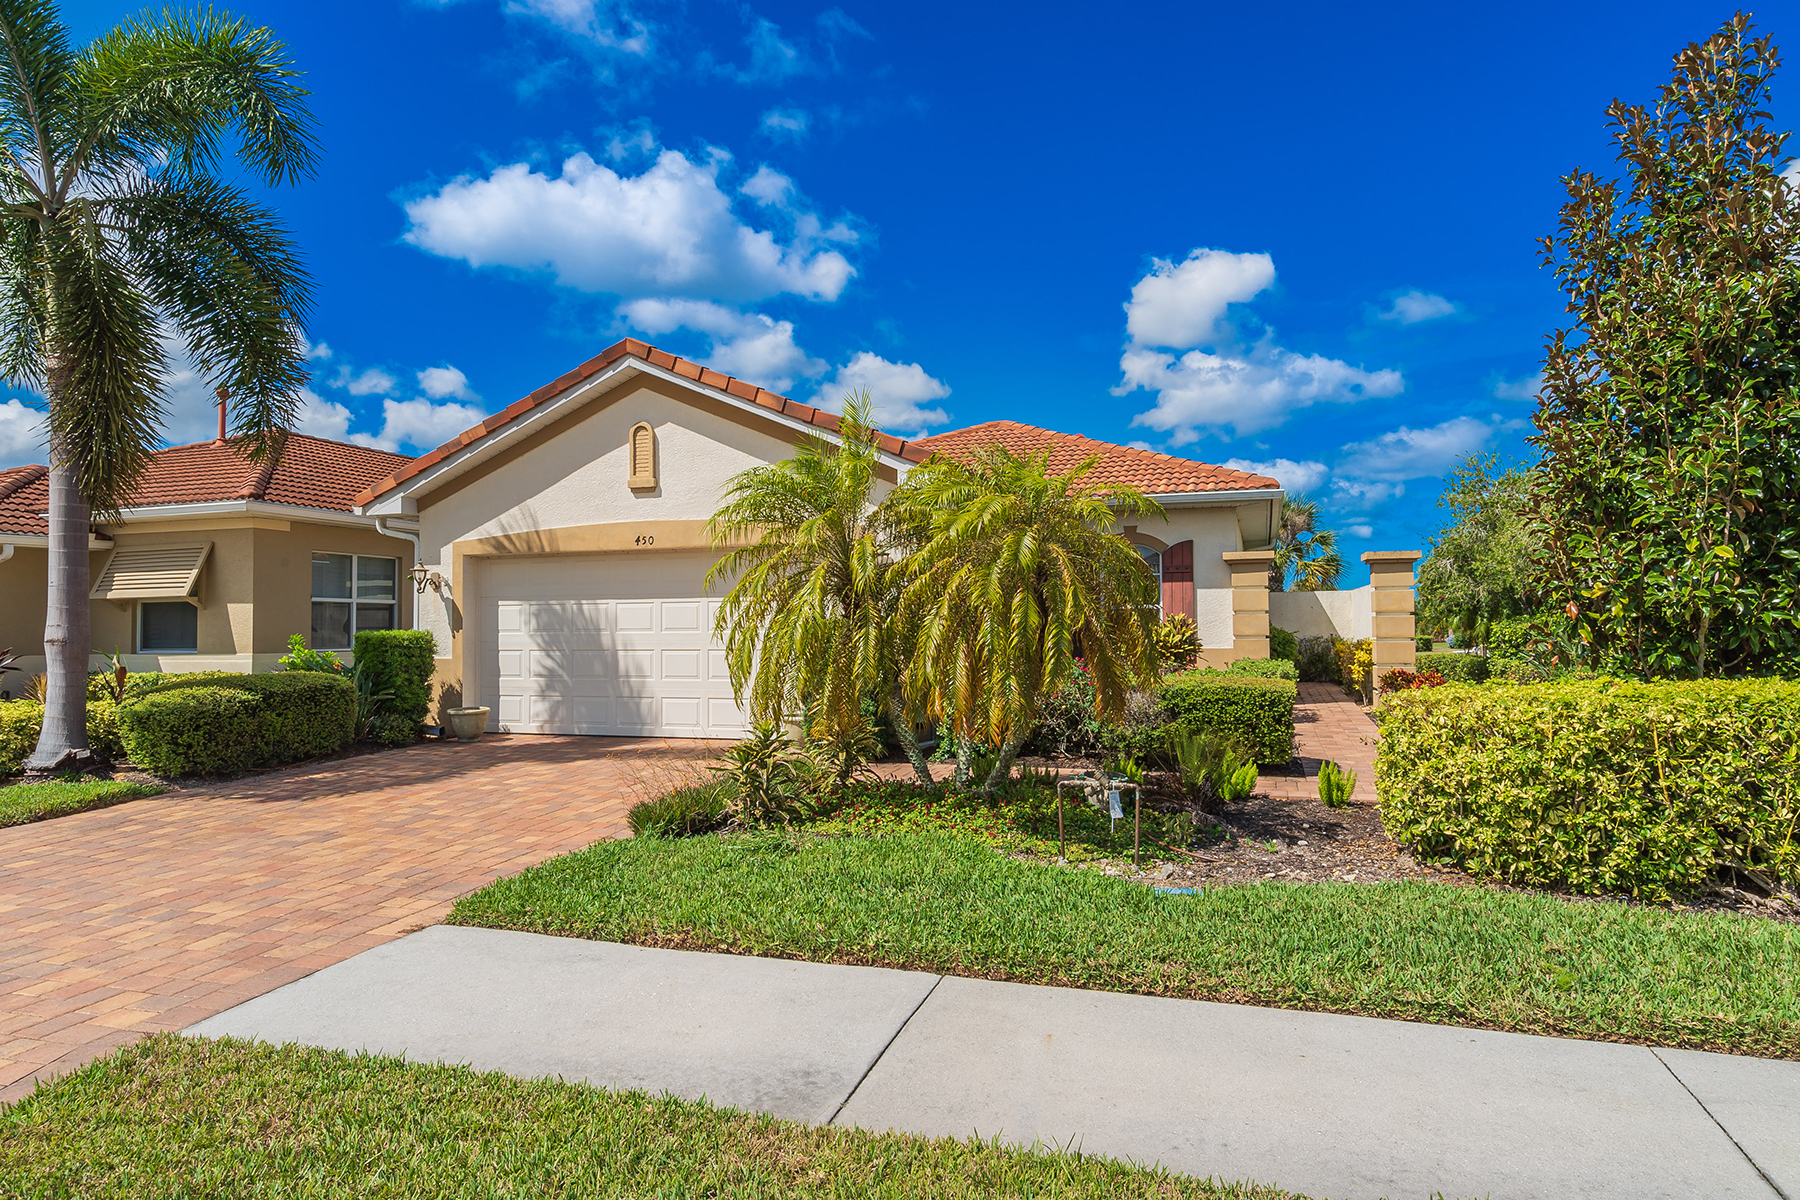 Single Family Homes for Sale at VENETIAN GOLF & RIVER CLUB 450 Montelluna Dr, North Venice, Florida 34275 United States